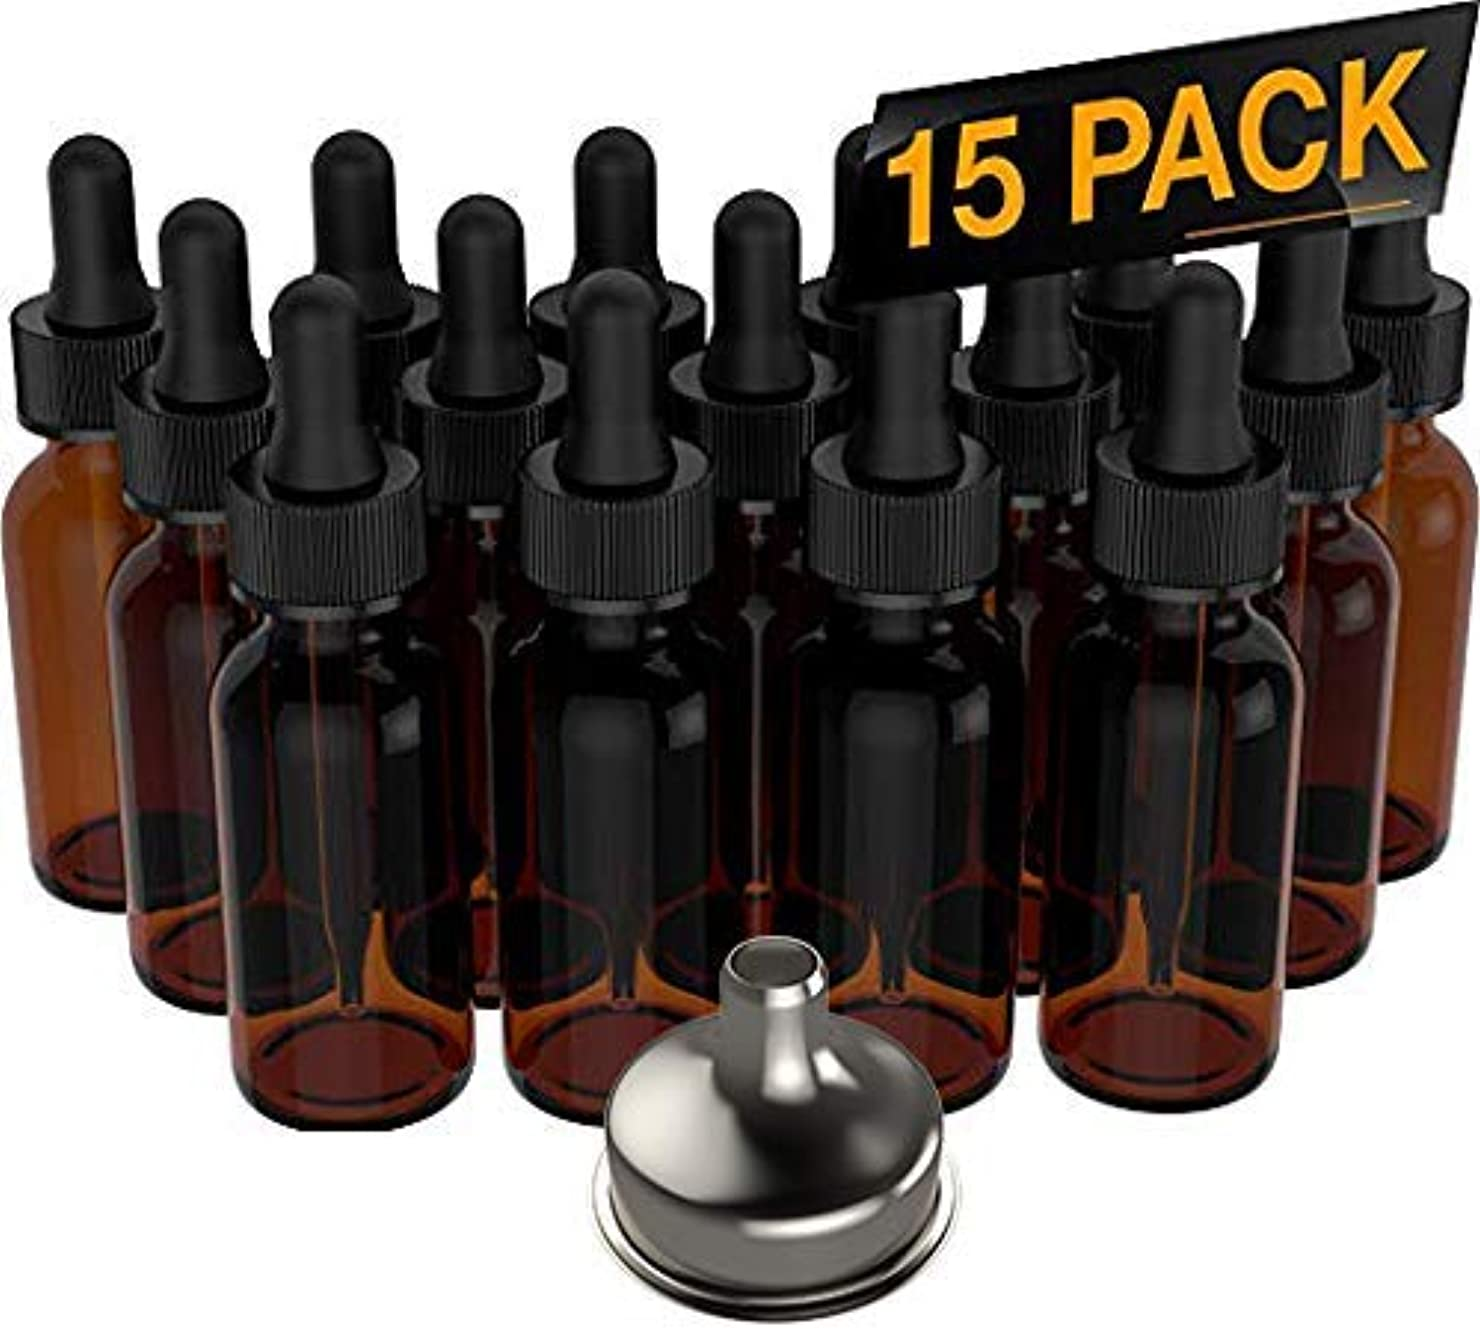 15 Pack Essential Oil Bottles - Round Boston Empty Refillable Amber Bottle with Glass Dropper [ Free Stainless...